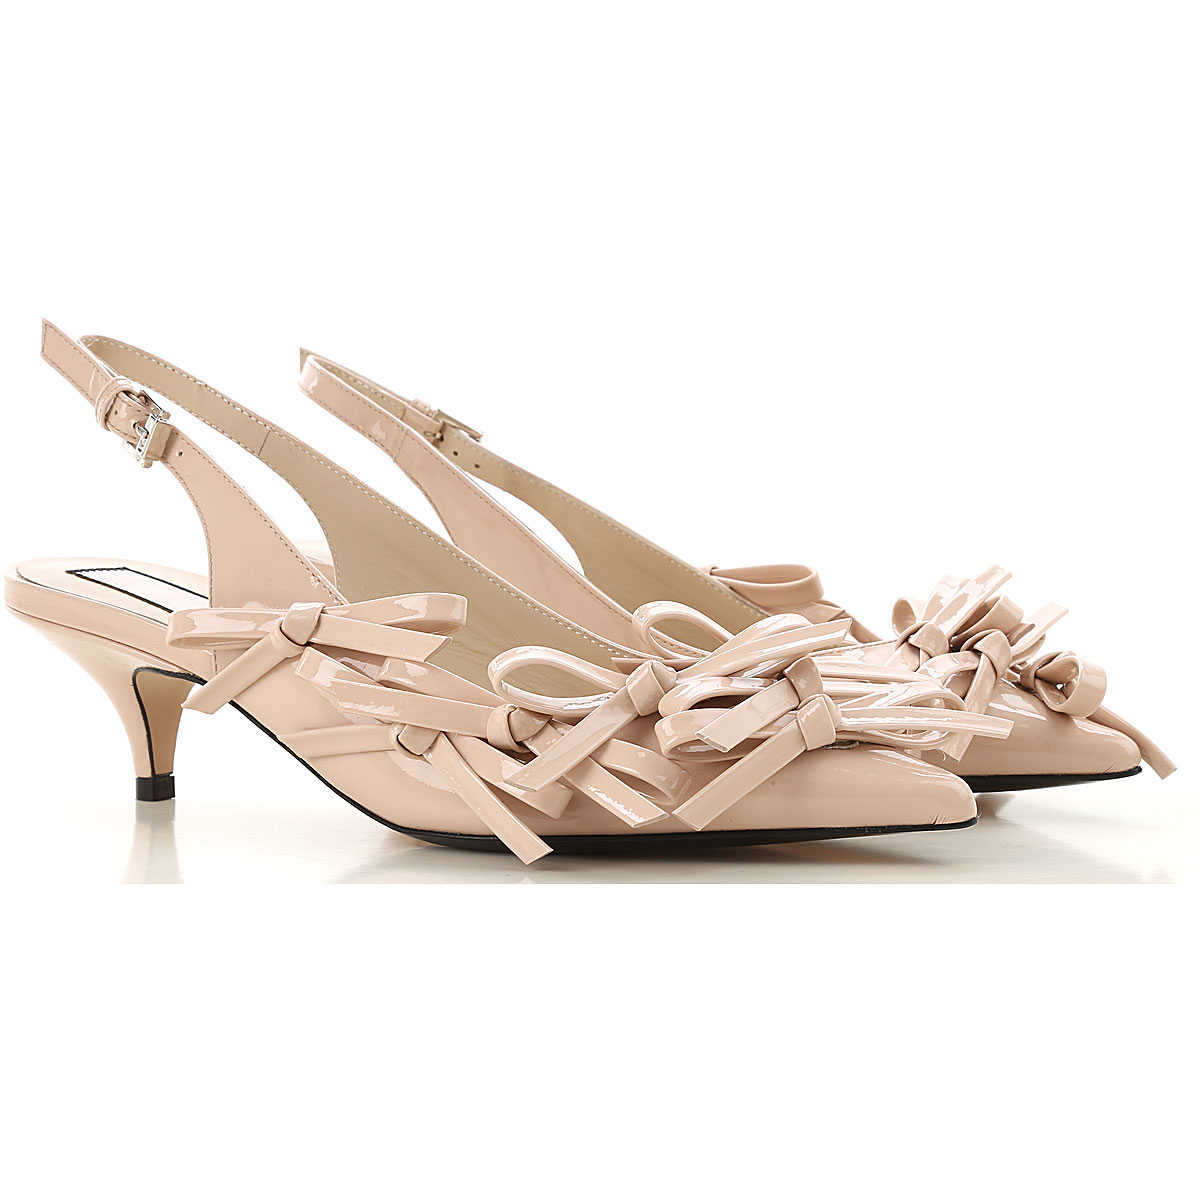 NO 21 Sandals for Women On Sale Nude DK - GOOFASH - Womens SANDALS